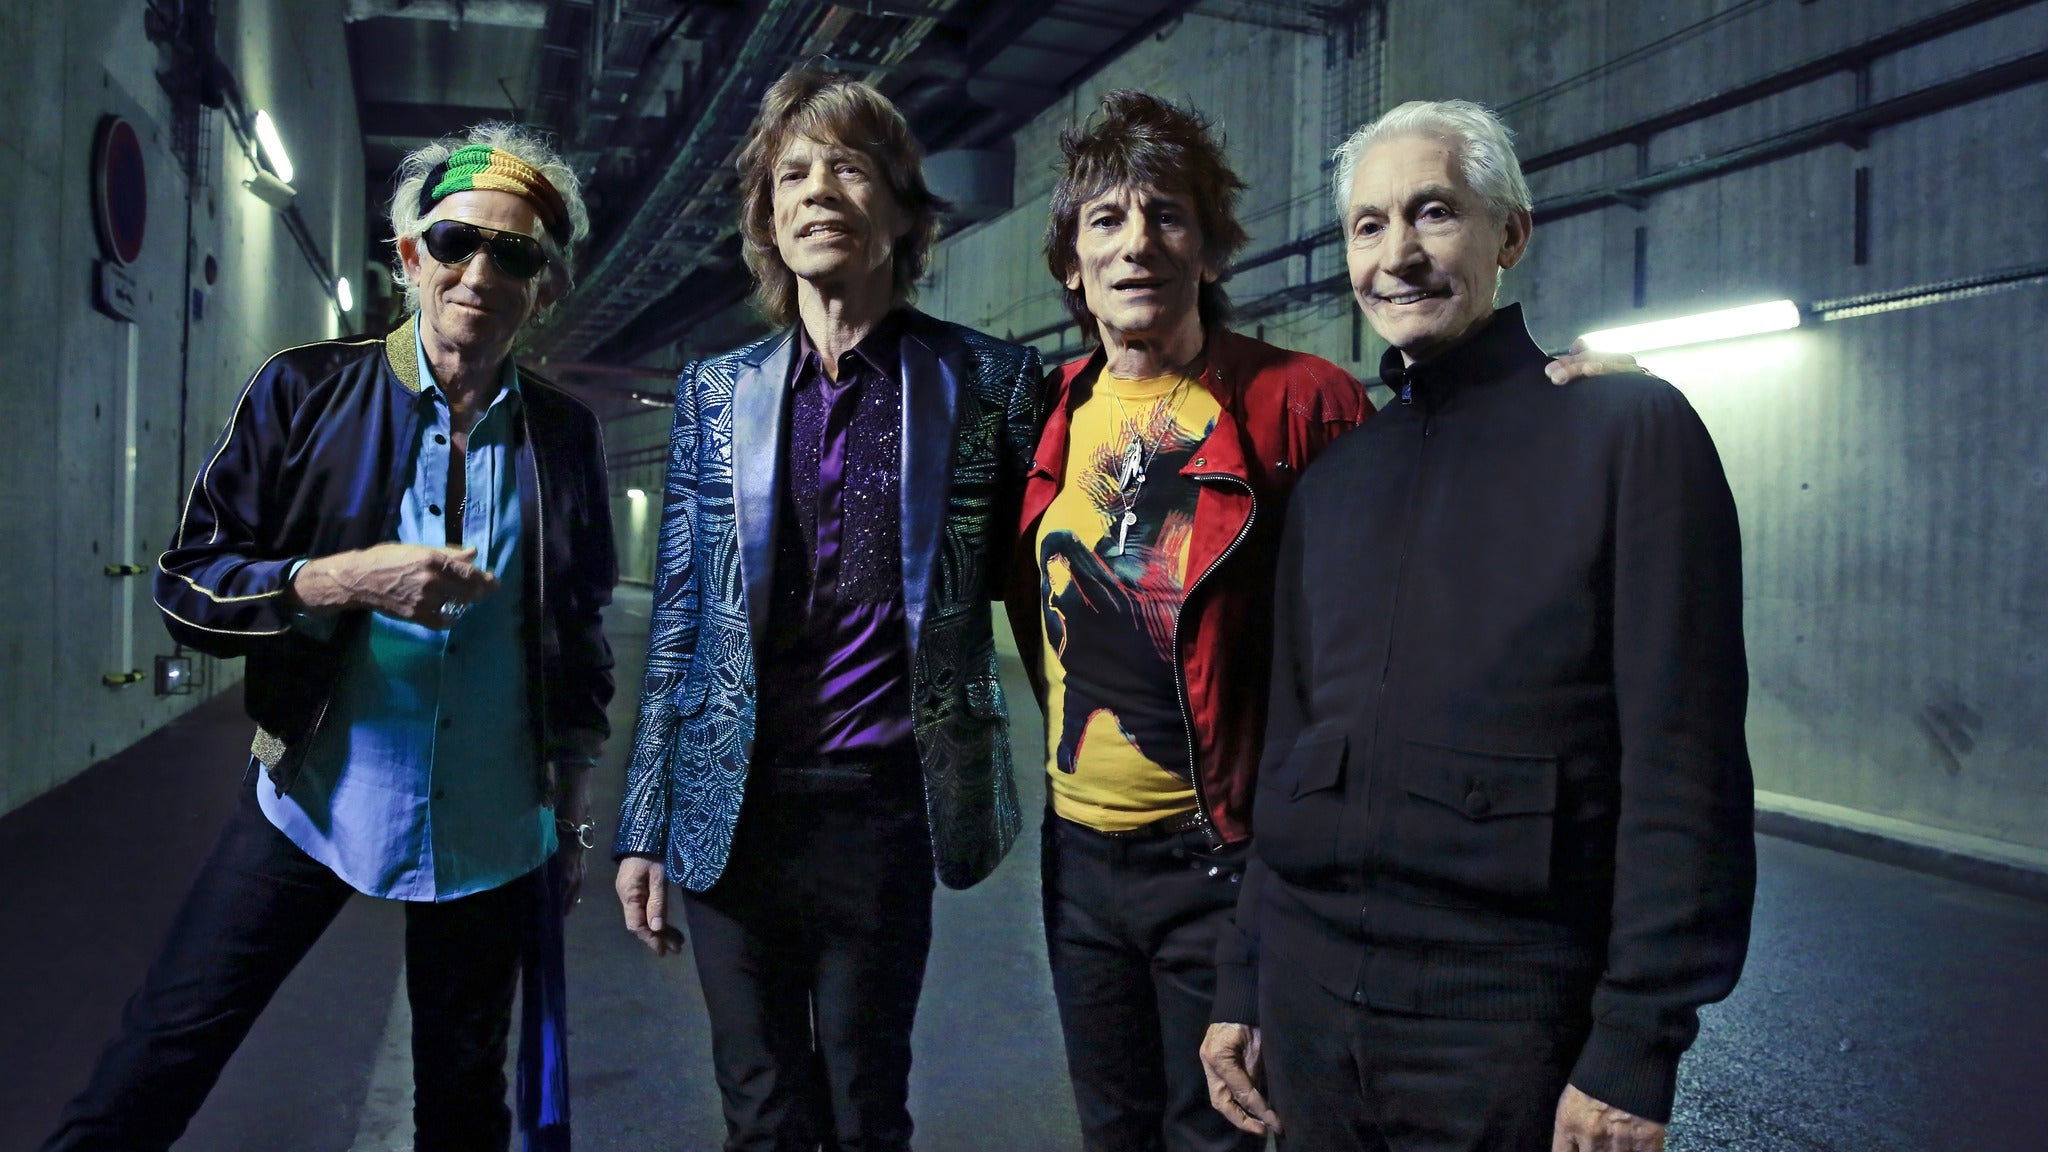 The Rolling Stones: 2019 No Filter Tour at MetLife Stadium